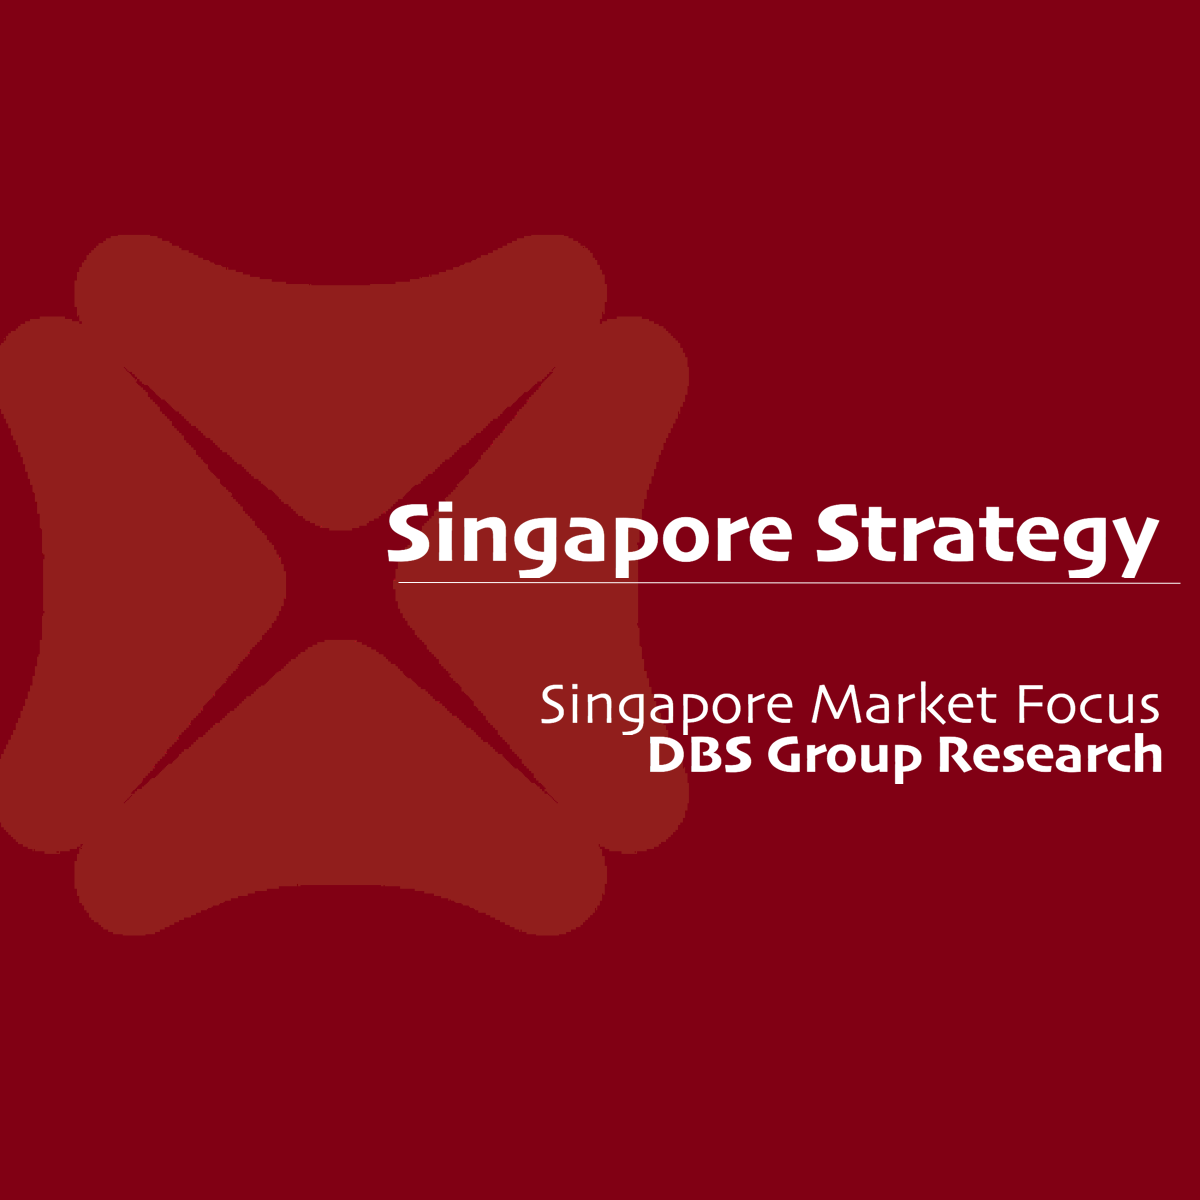 Singapore Market Focus - DBS Vickers 2017-06-16: Facing Moderating Growth